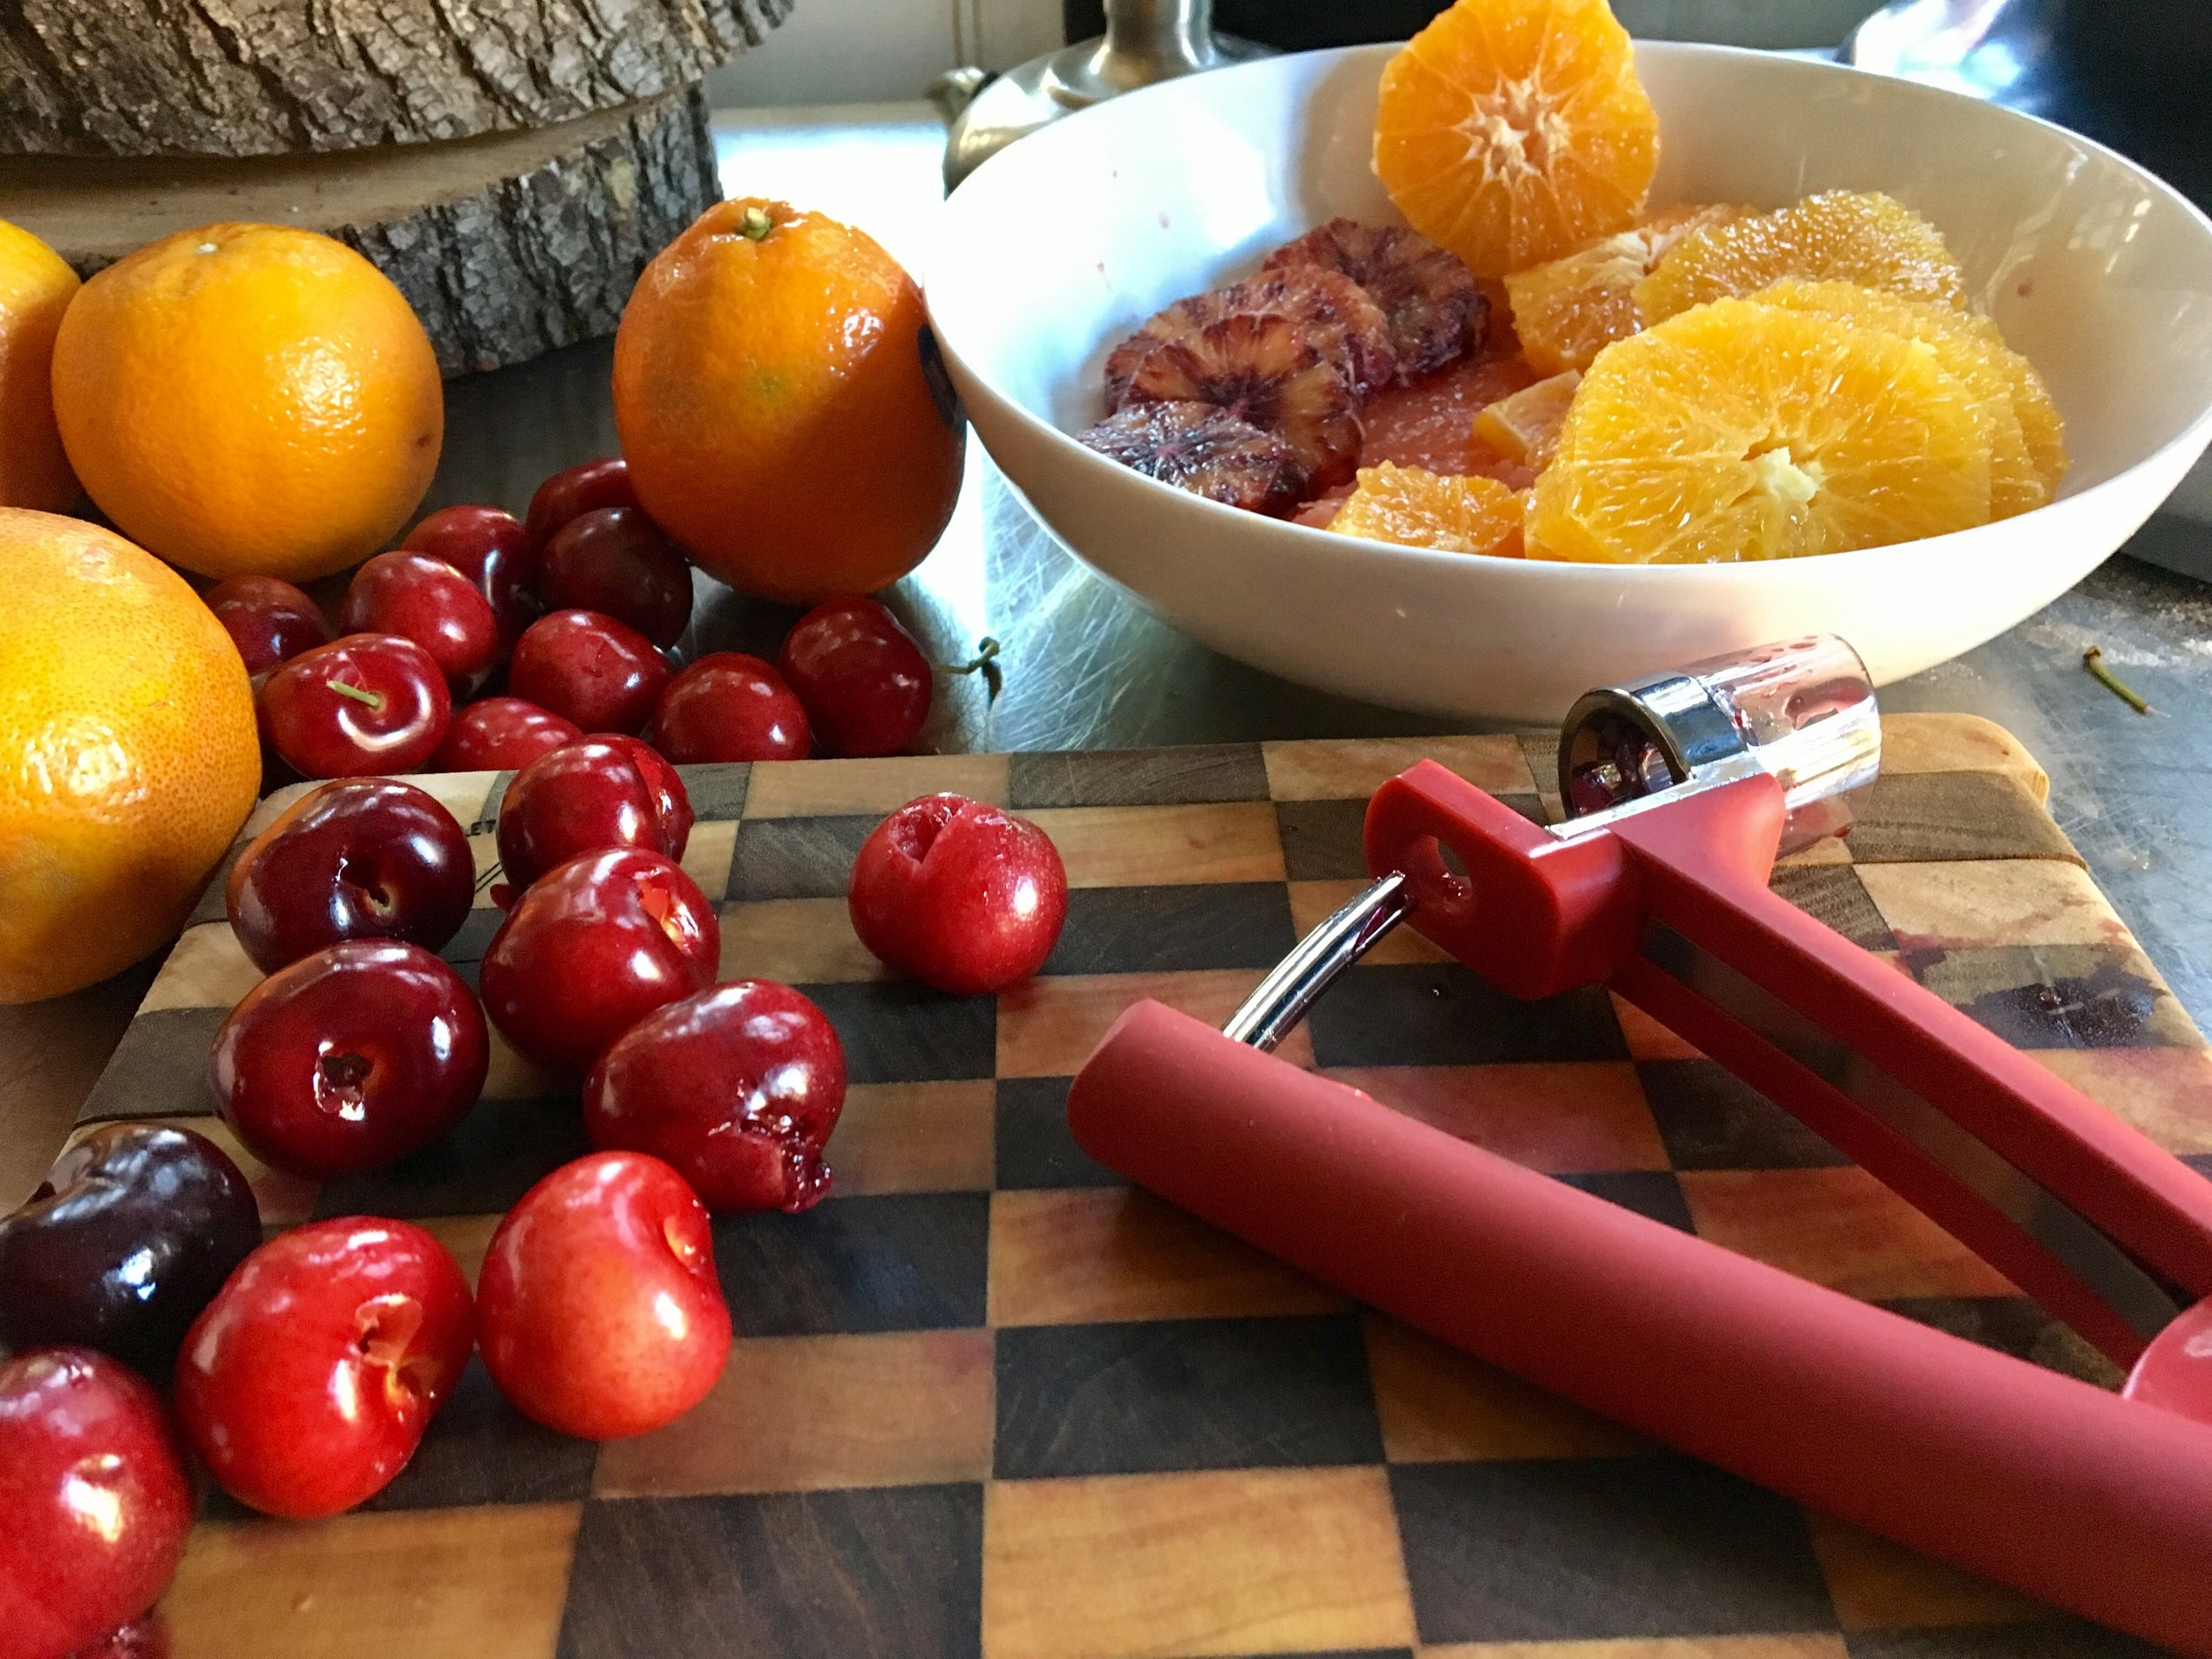 Everyone should have a cherry pitter. You will use more fresh cherries!